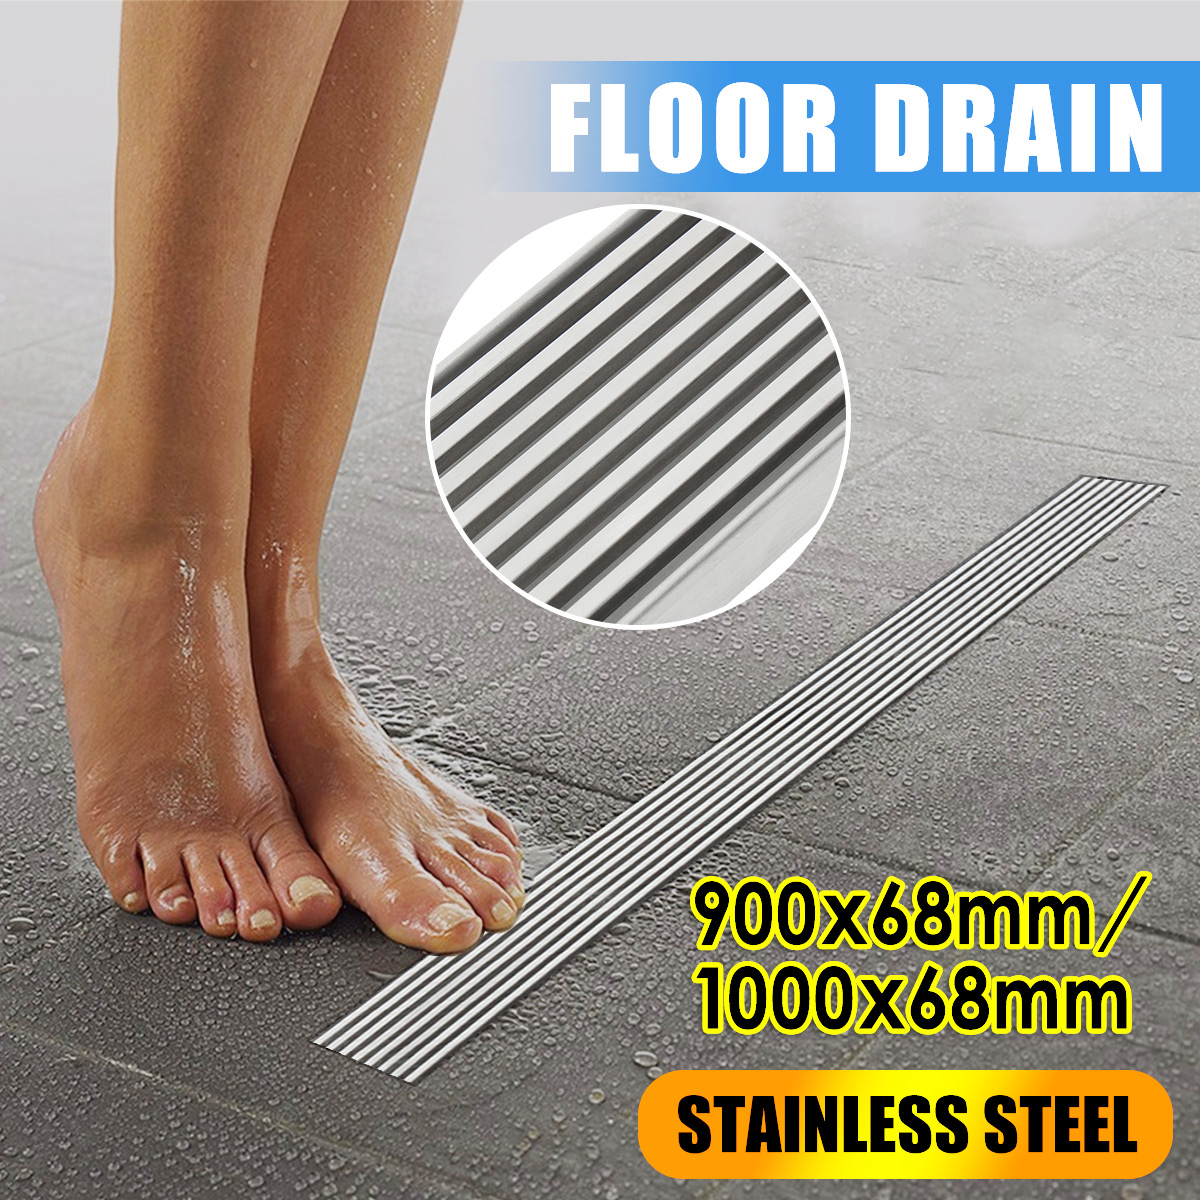 90/100cm Stainless Steel Long Floor Drainer Invisible Bathroom Floor Drain Waste Grate Shower Drainer Kitchen Home Floor Drain цена